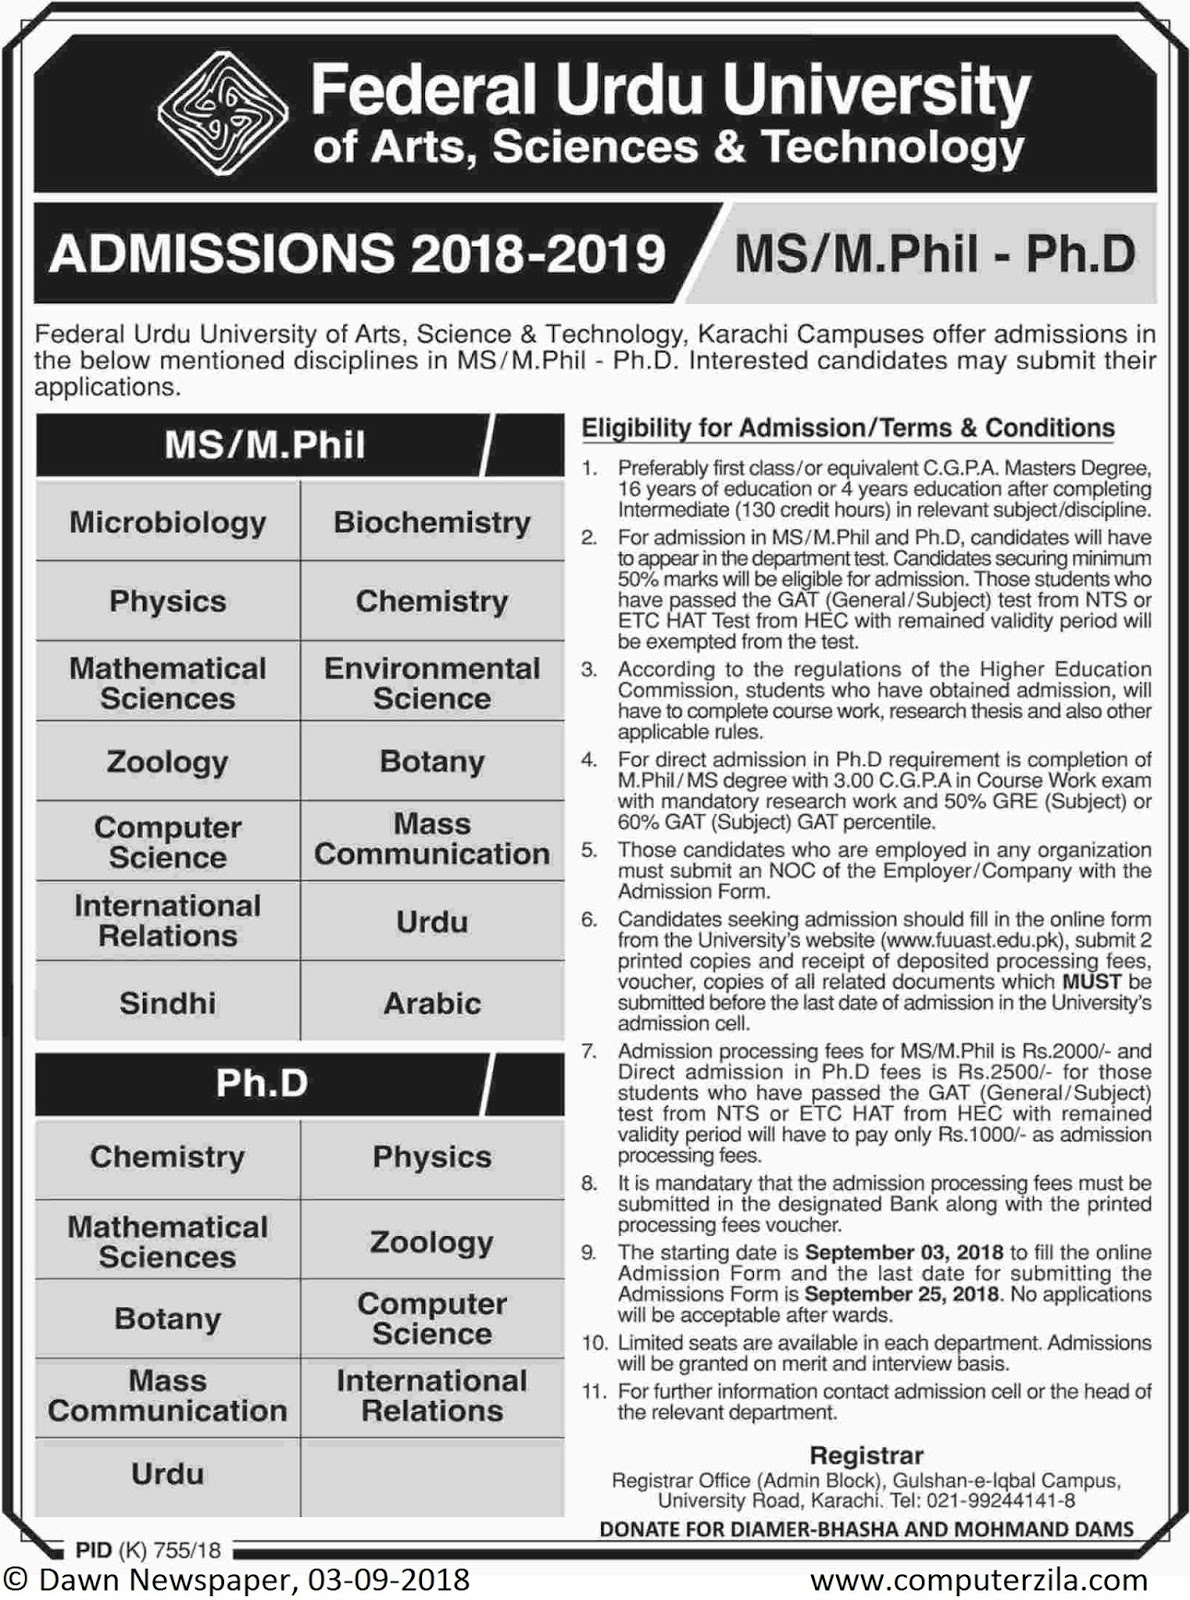 Admissions Open For Fall 2018 At FUUAST Karachi Campus